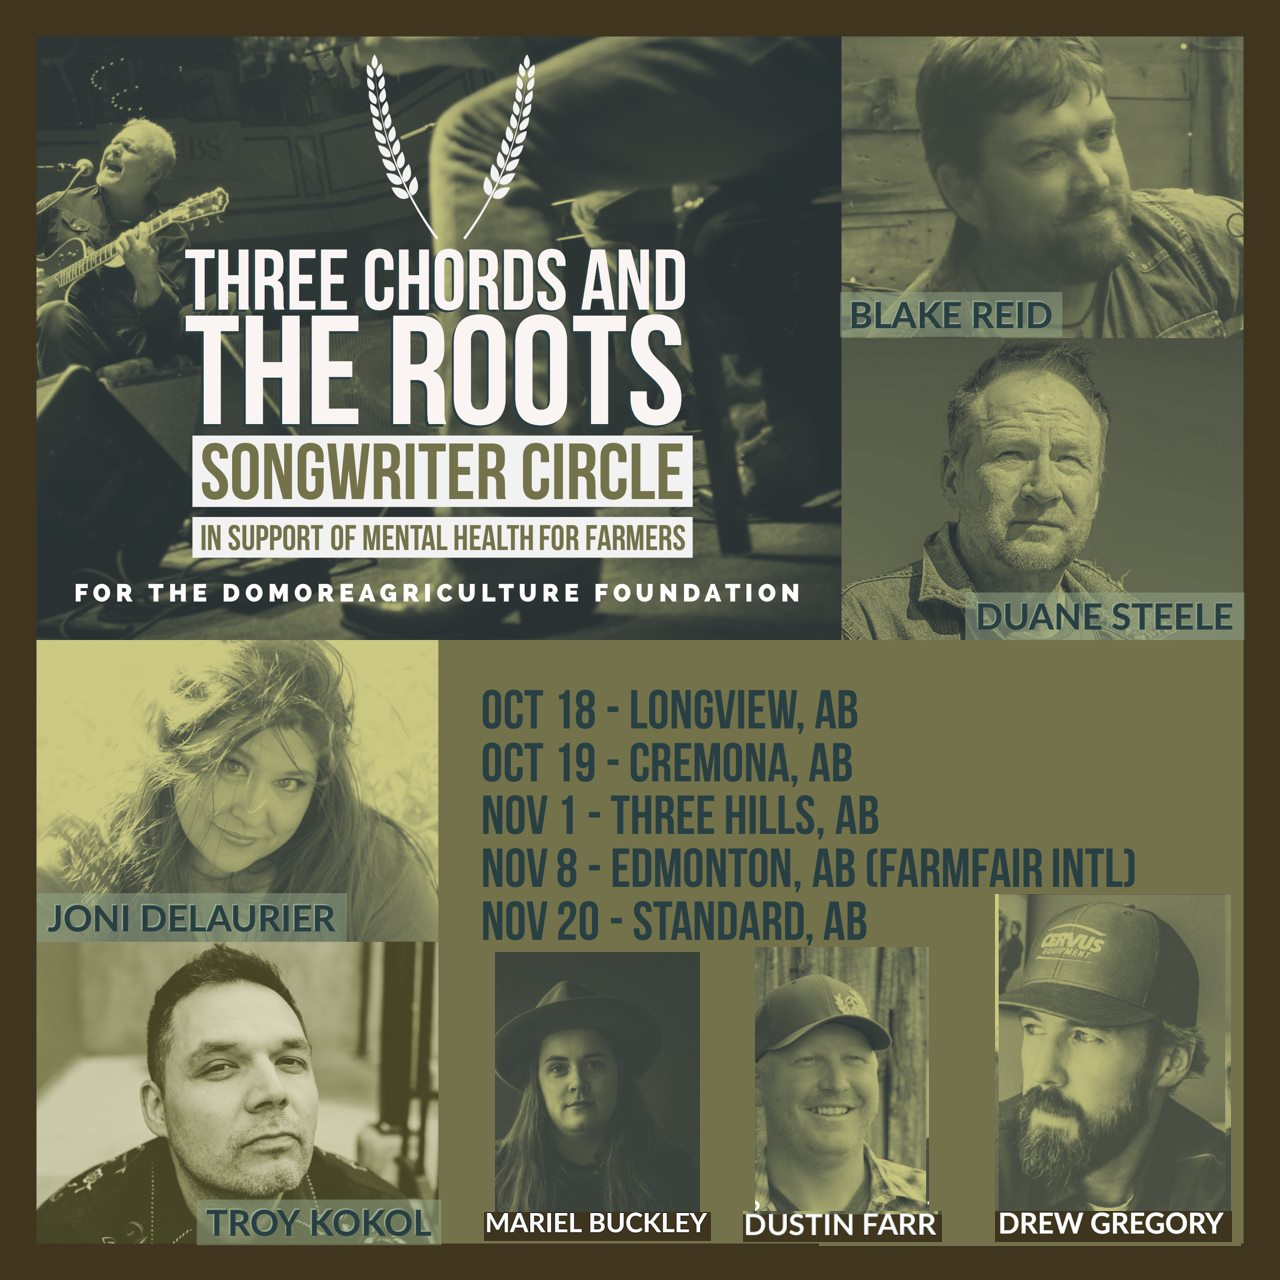 Three Chords and the Roots Songwriter Circle in Support of Mental Health For Farmers - Nov 8